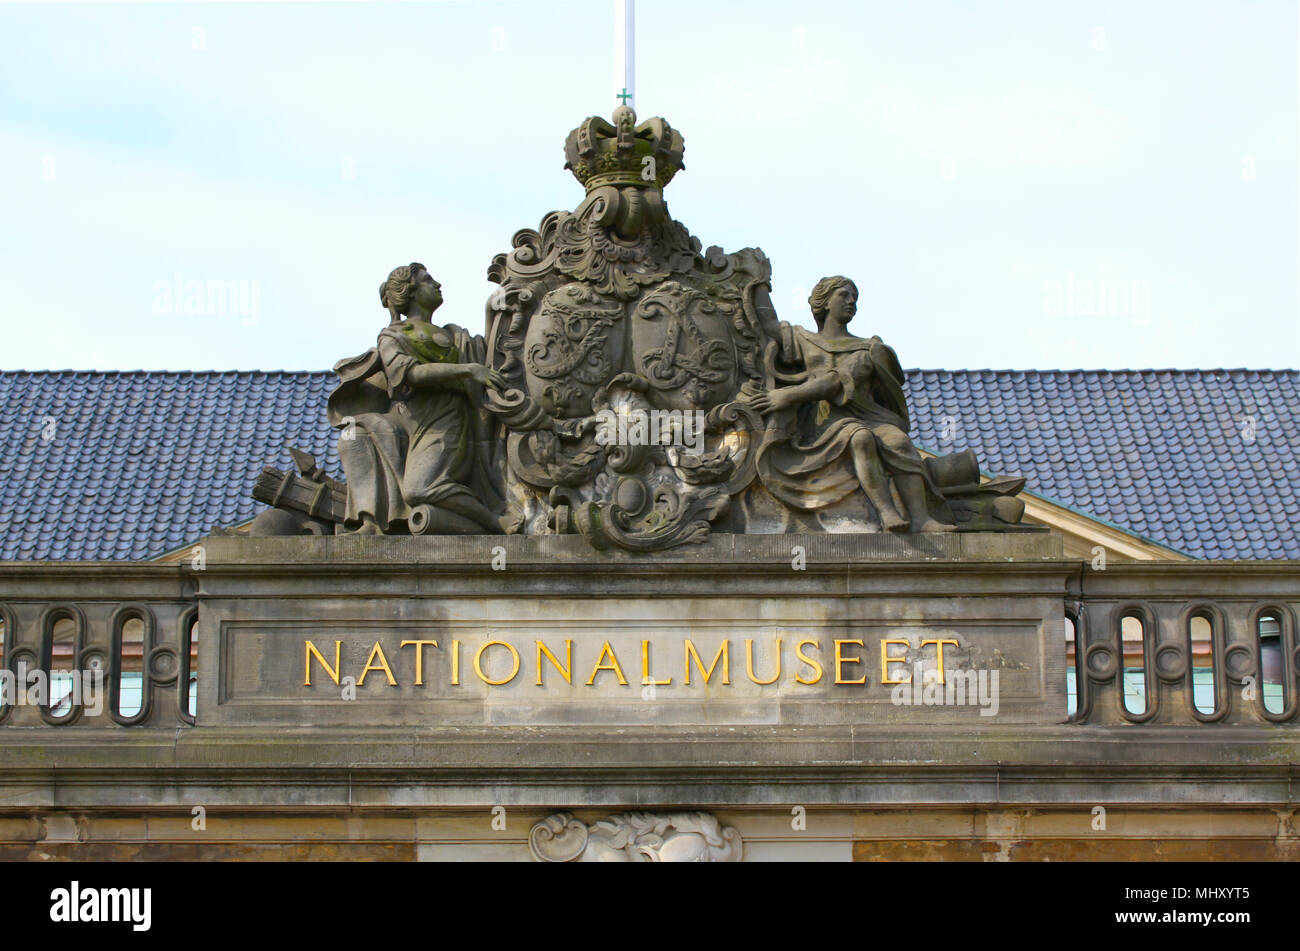 Copenhagen Denmark - May 3, 2018: The National Museum of Denmark in Copenhagen Denmark's most important and largest cultural and historical museum com - Stock Image